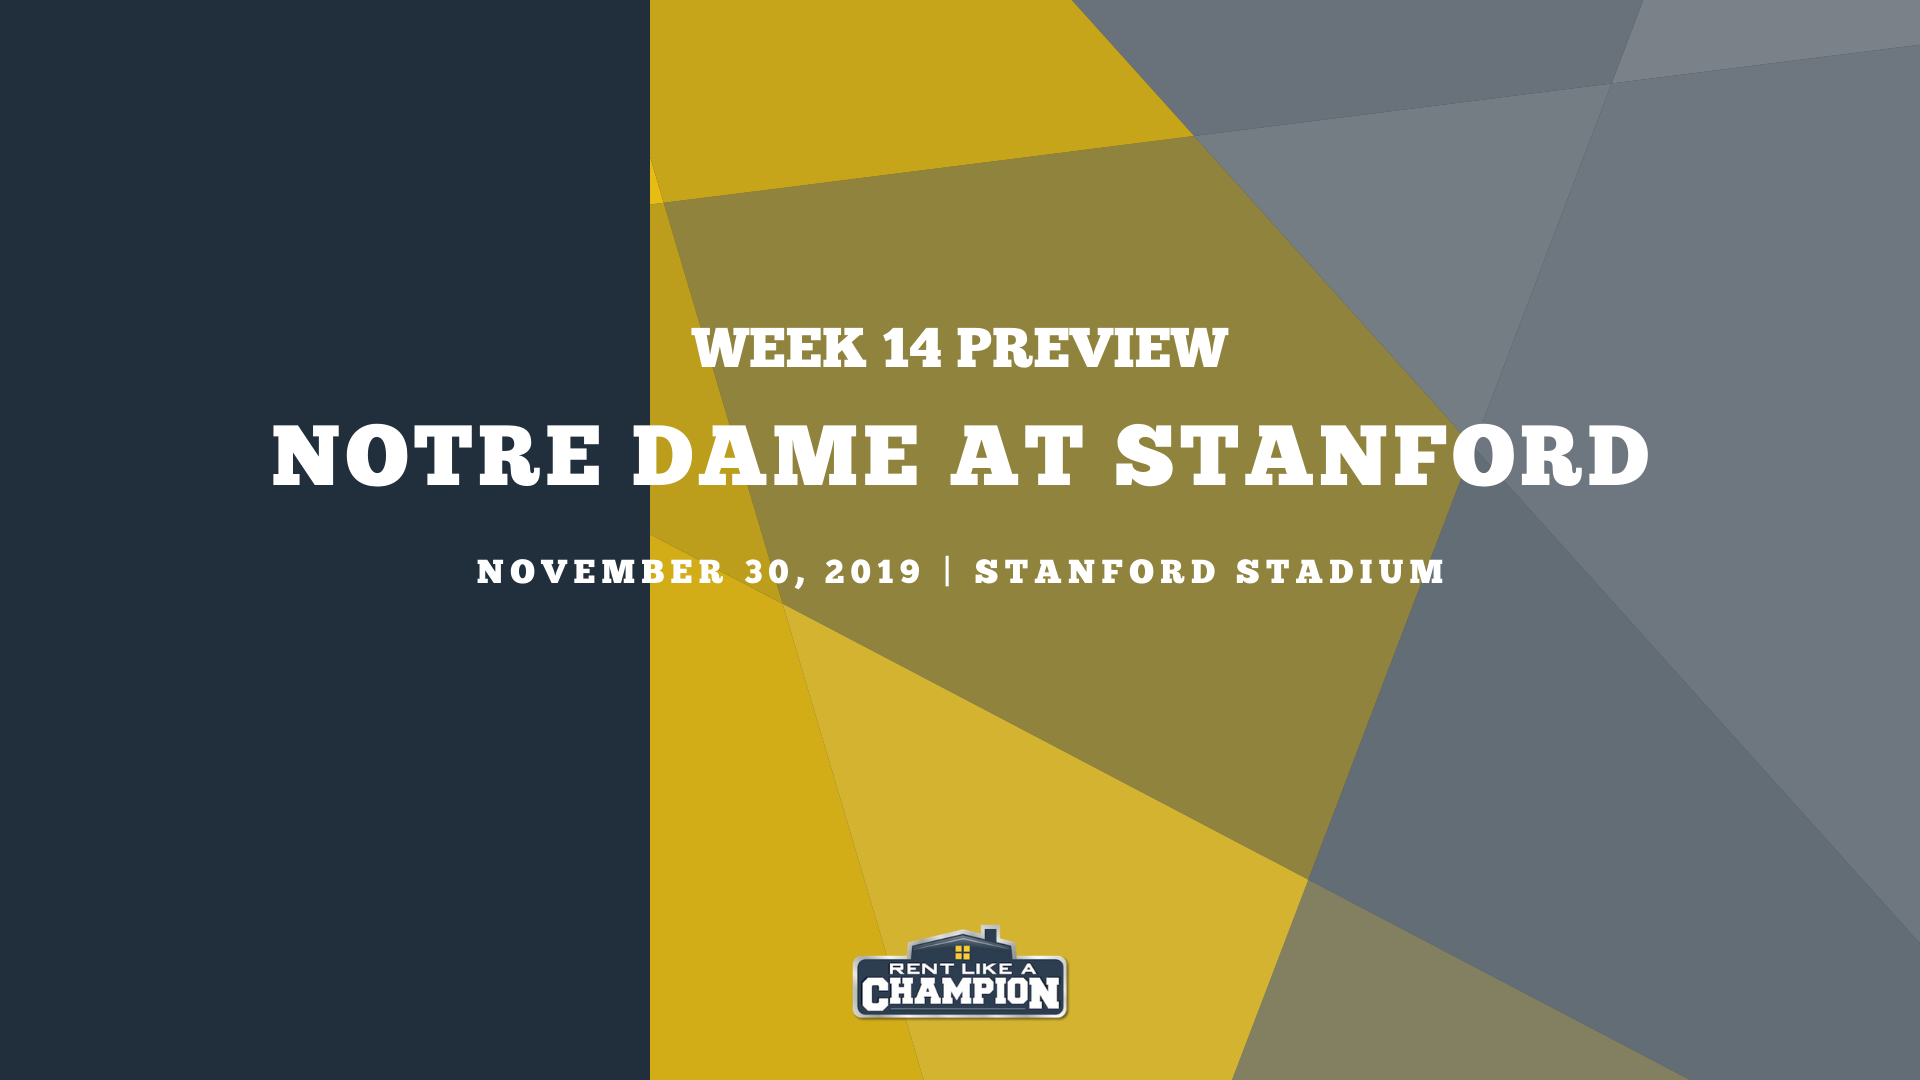 Notre Dame Game Preview Template (11)